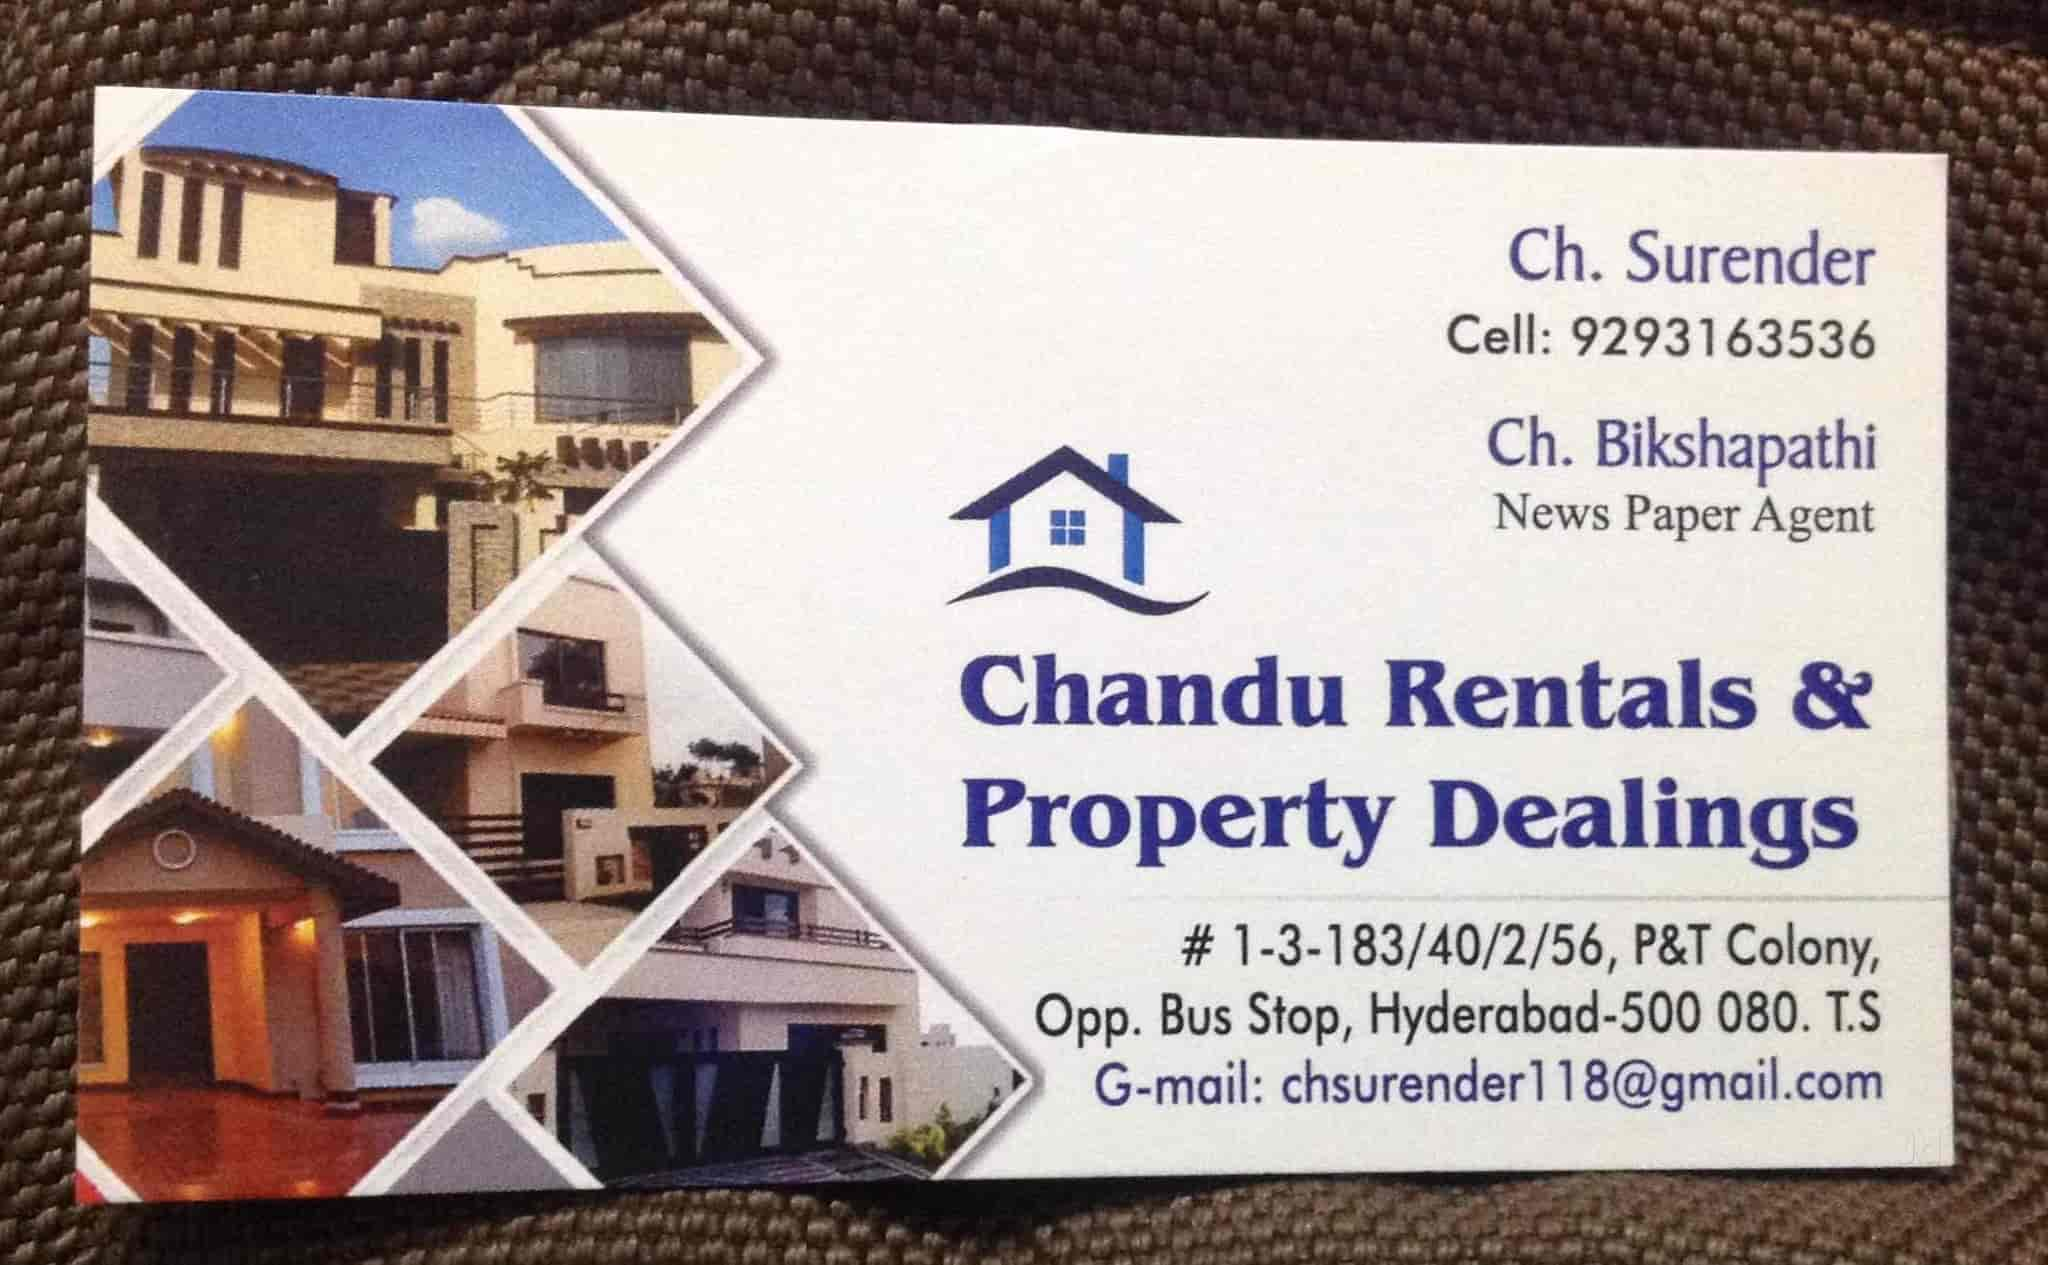 Chandu Rentals & Property Dealings, Gandhi Nagar - Estate